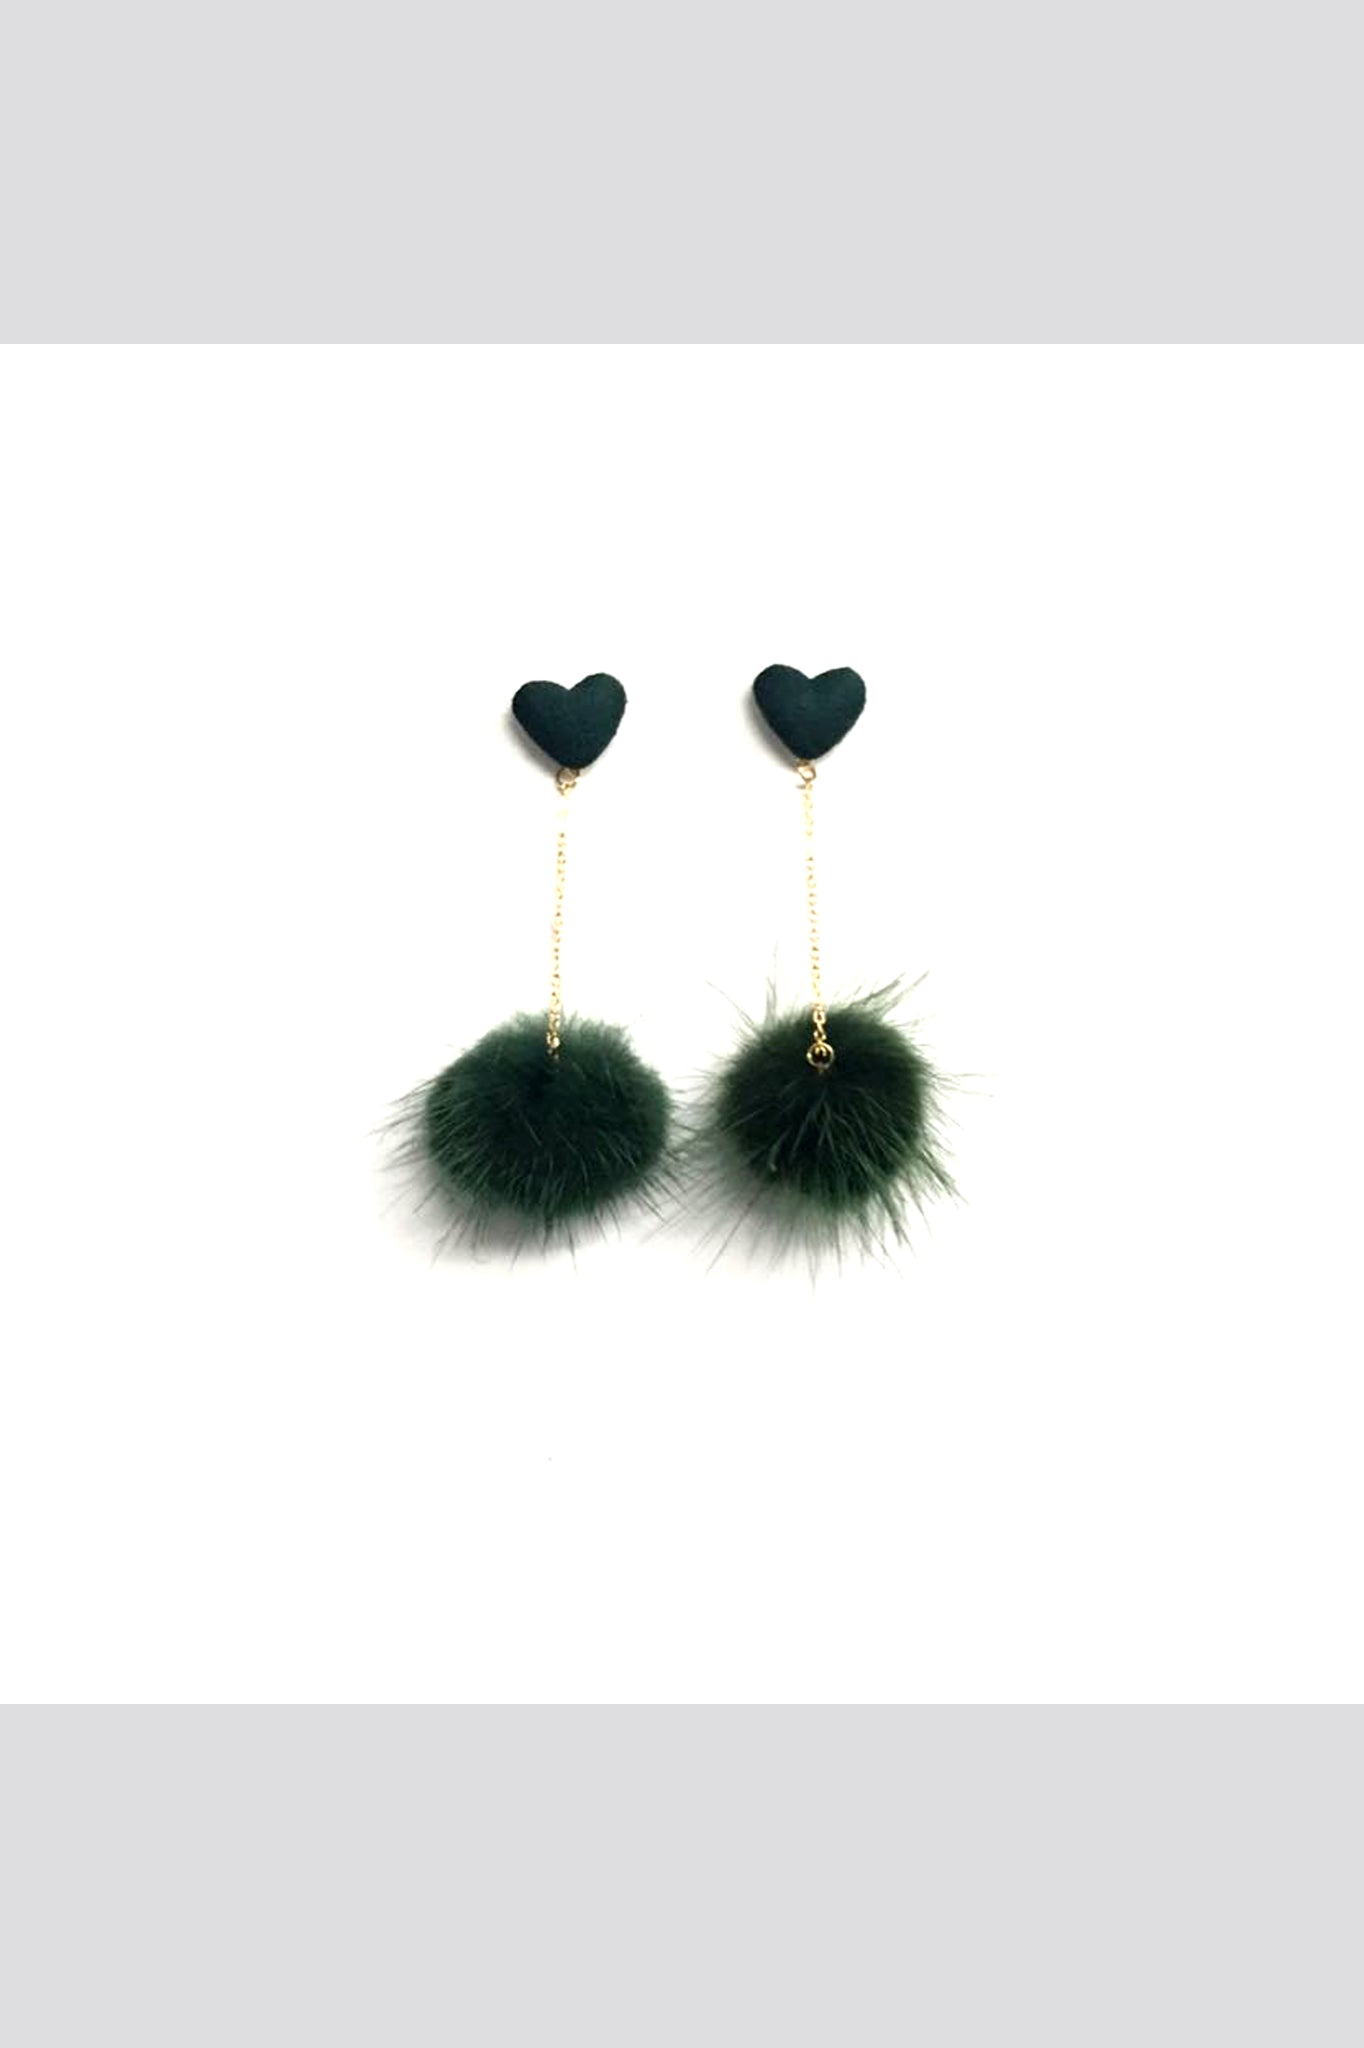 Earring-Design-8